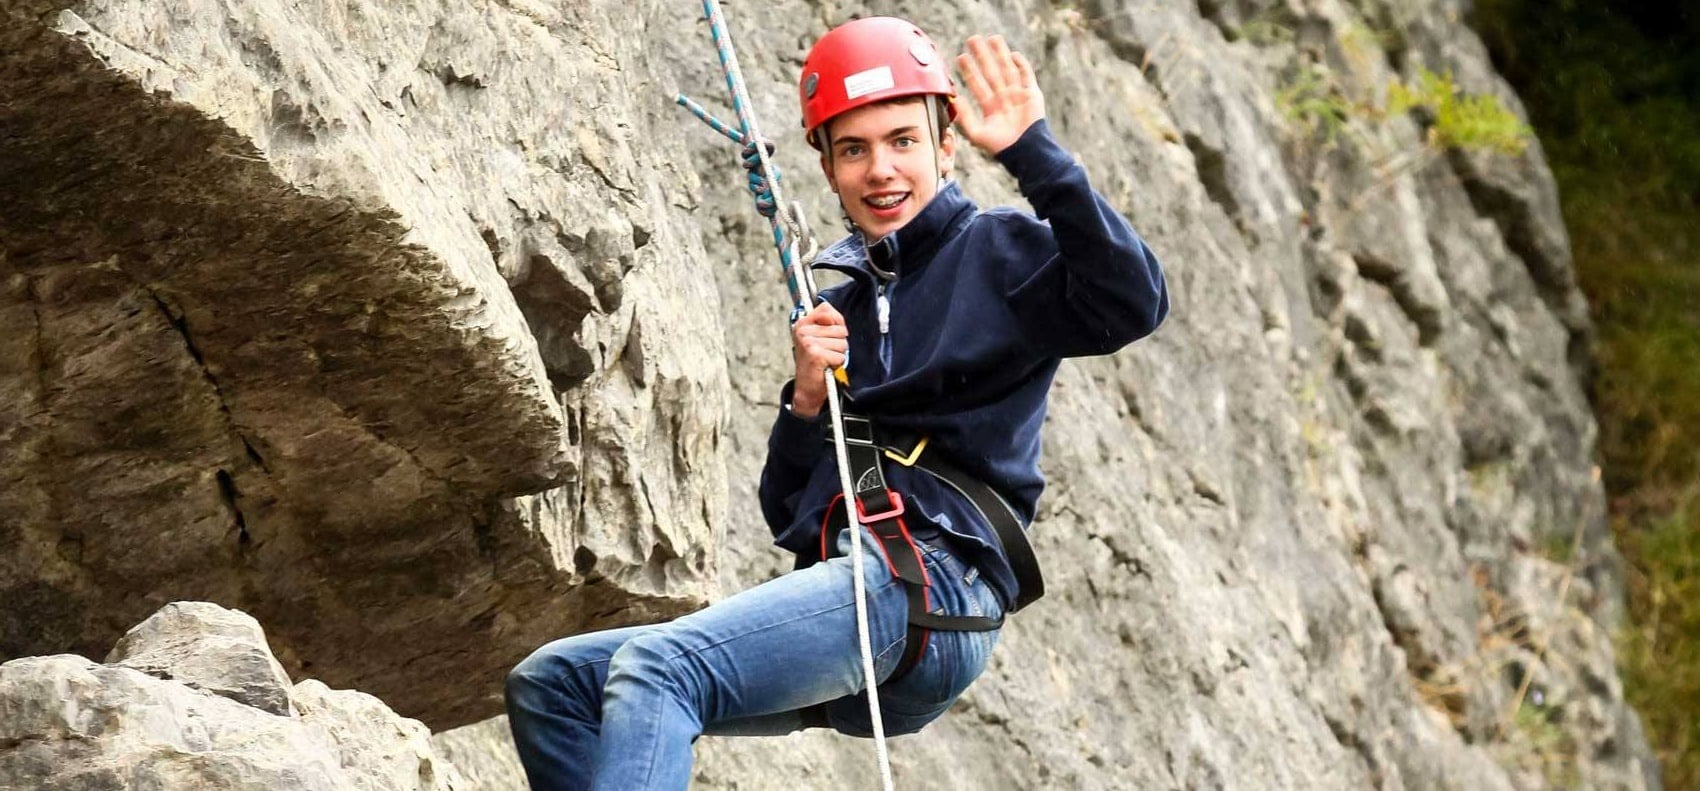 Climbing And Abseiling Experience - North Wales-6